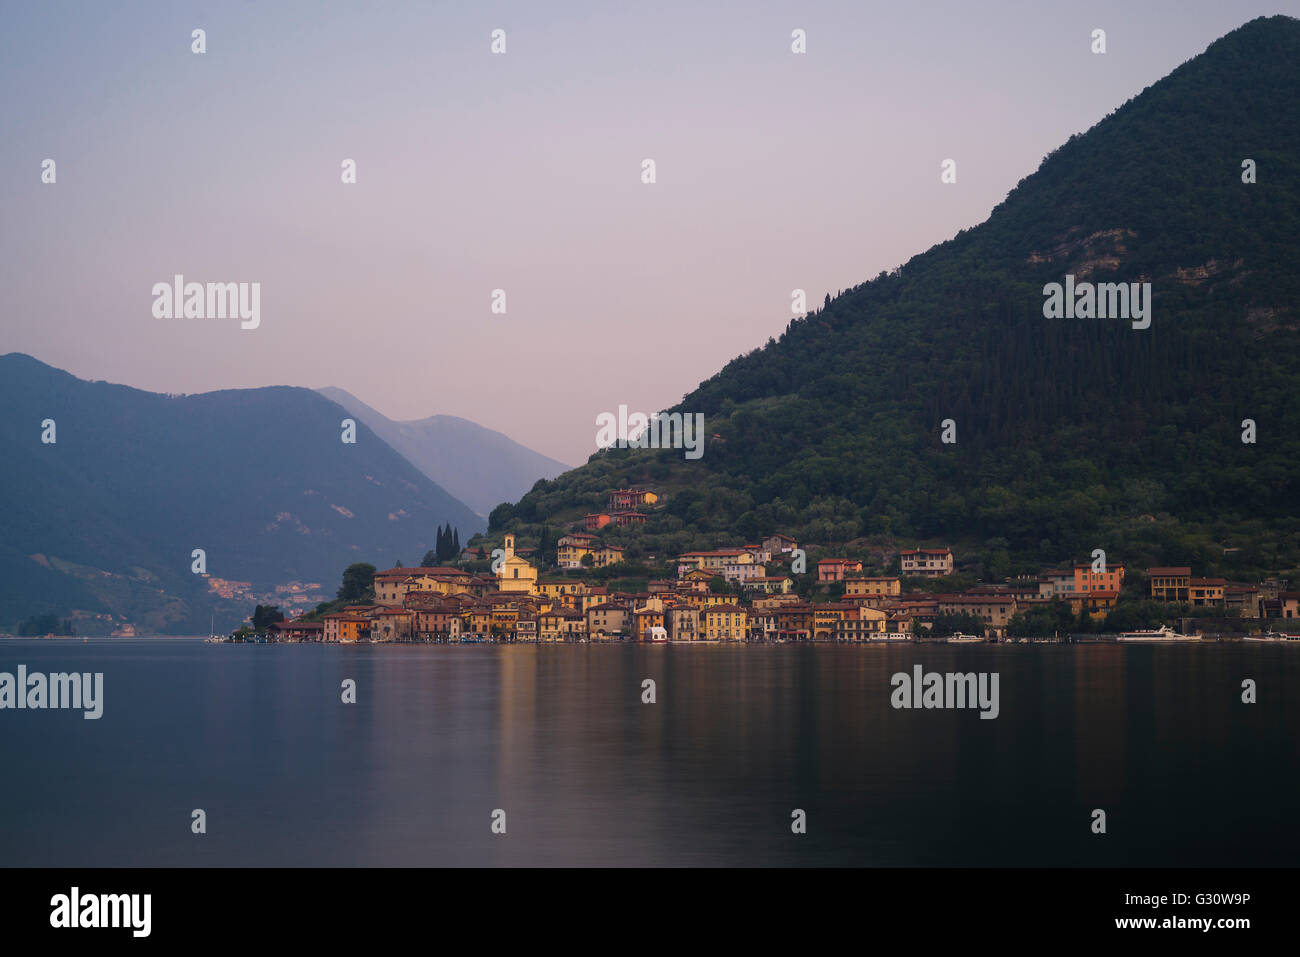 Picturesque mediterranean village of Peschiera Maraglio on the shore of Monte Isola island on Lake Iseo at dawn, - Stock Image